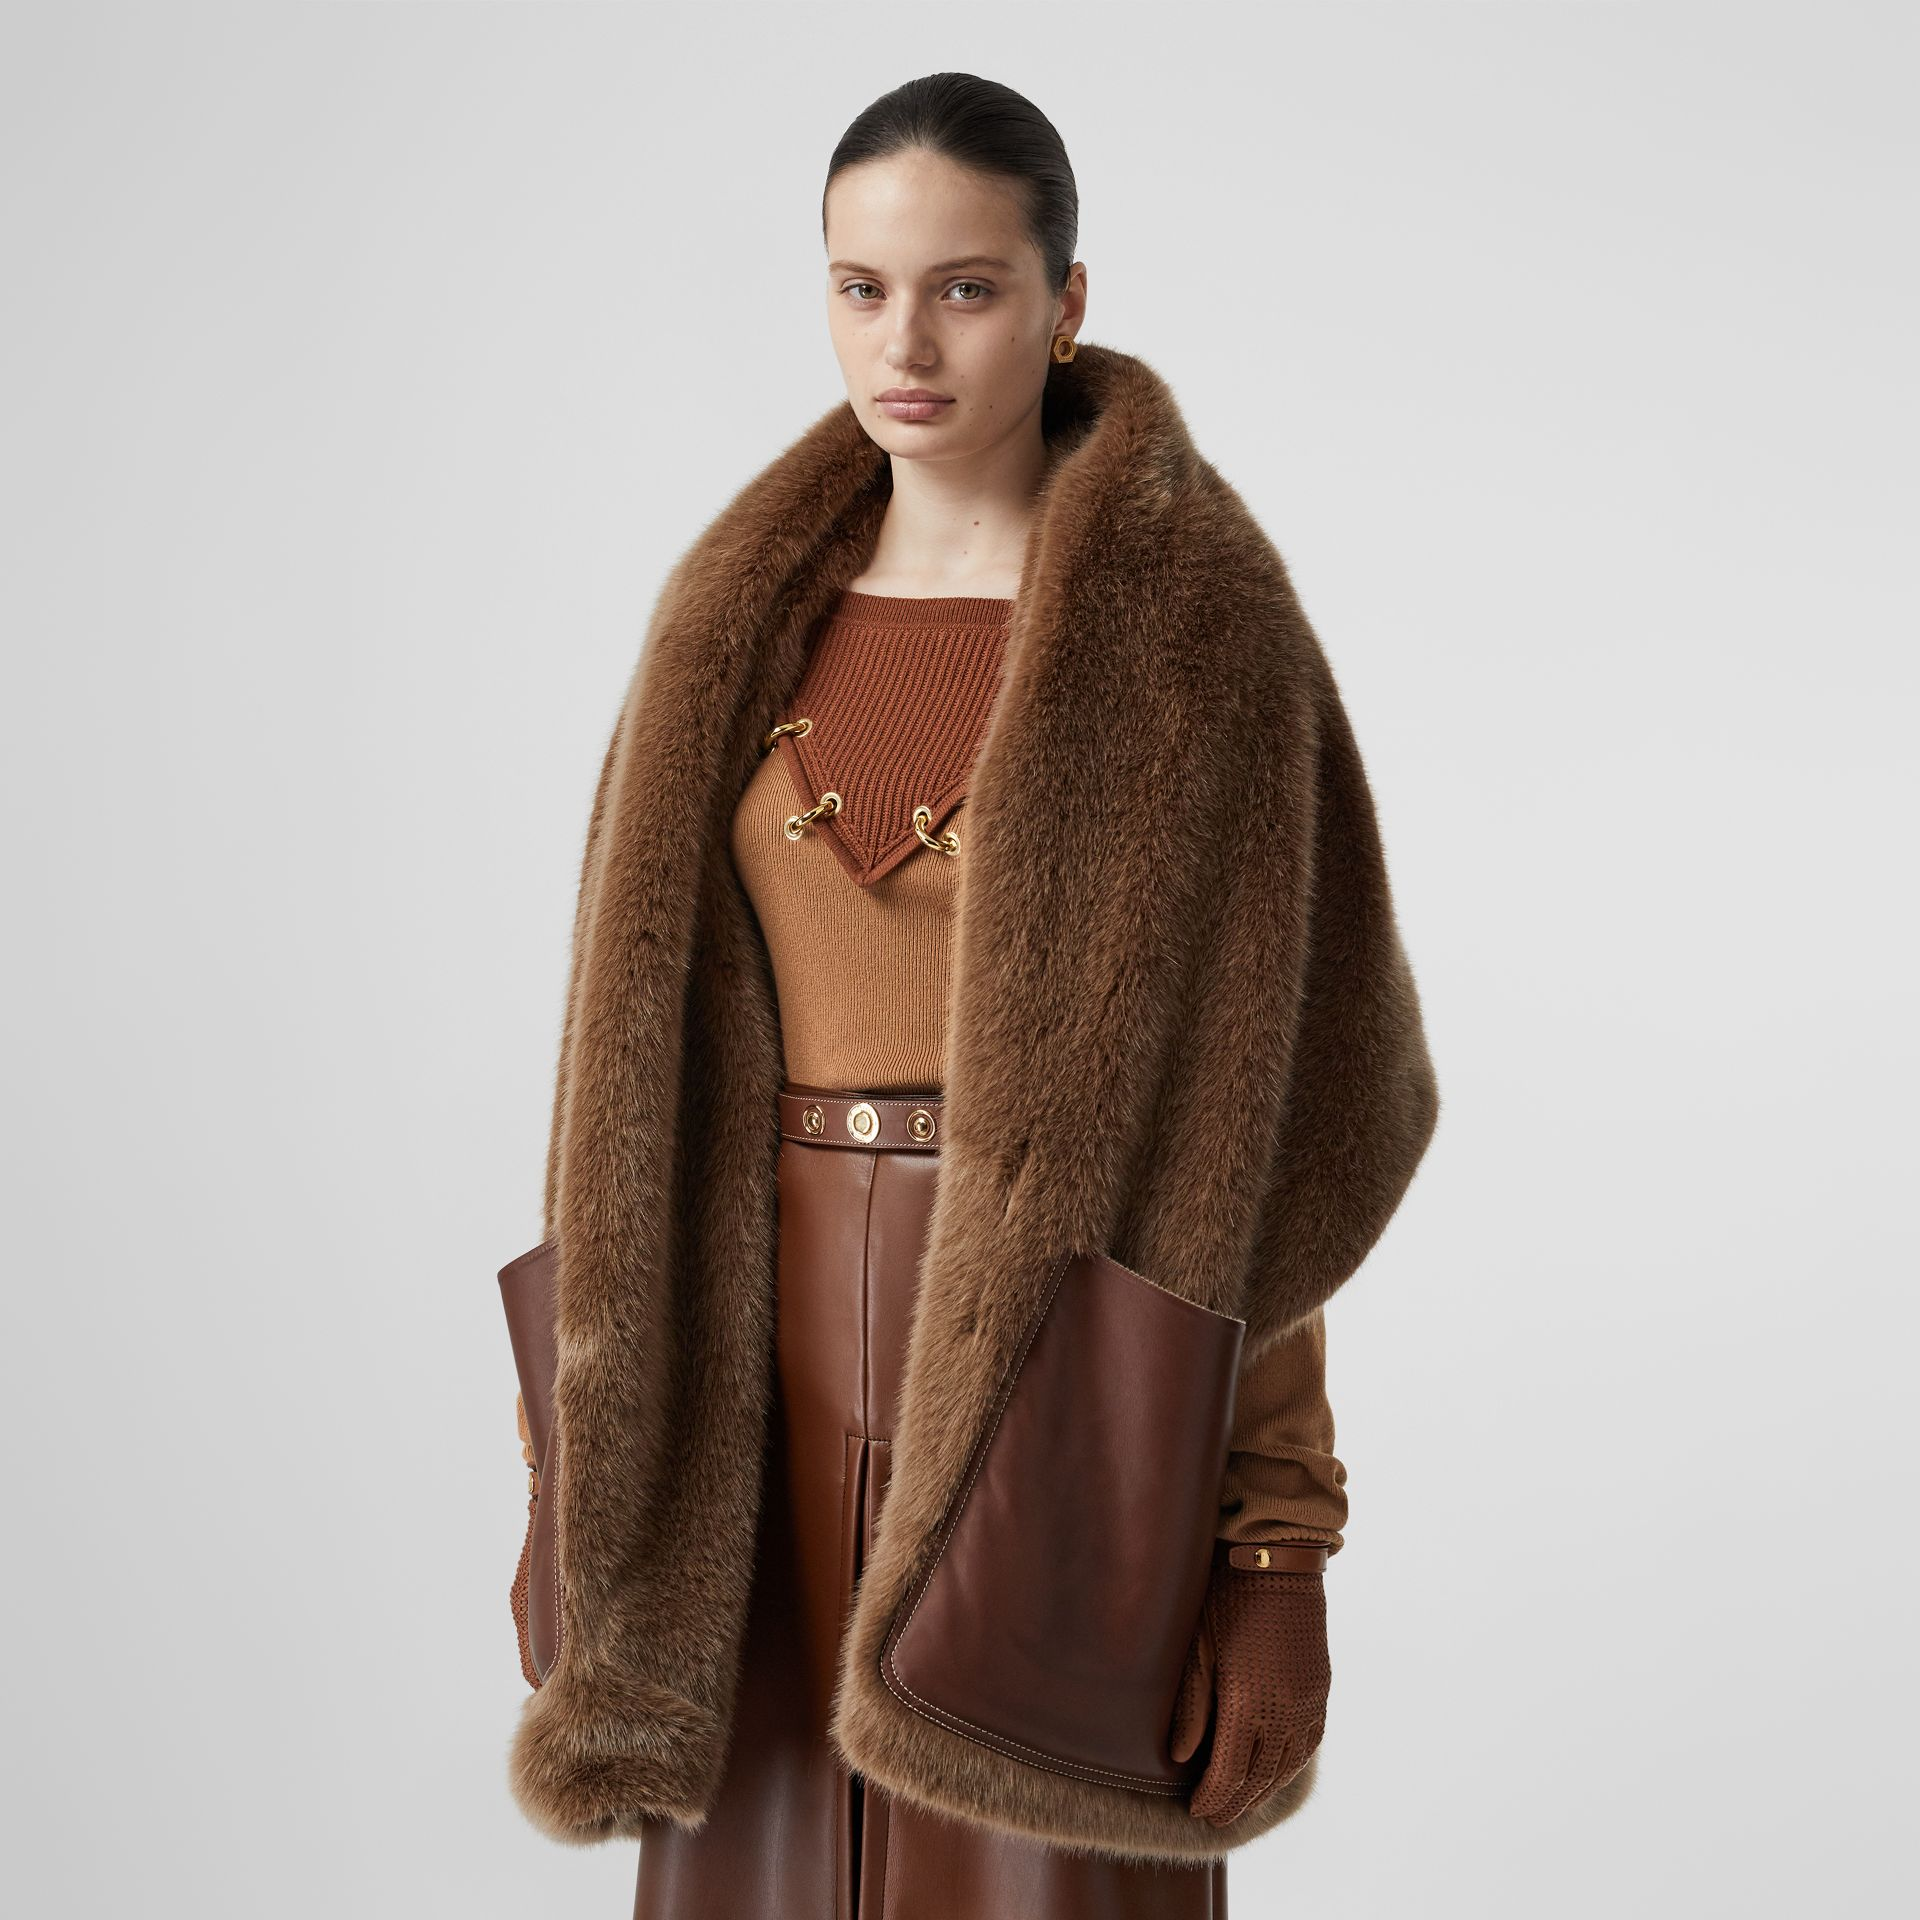 Faux Fur and Cashmere Stole in Camel - Women | Burberry - gallery image 4